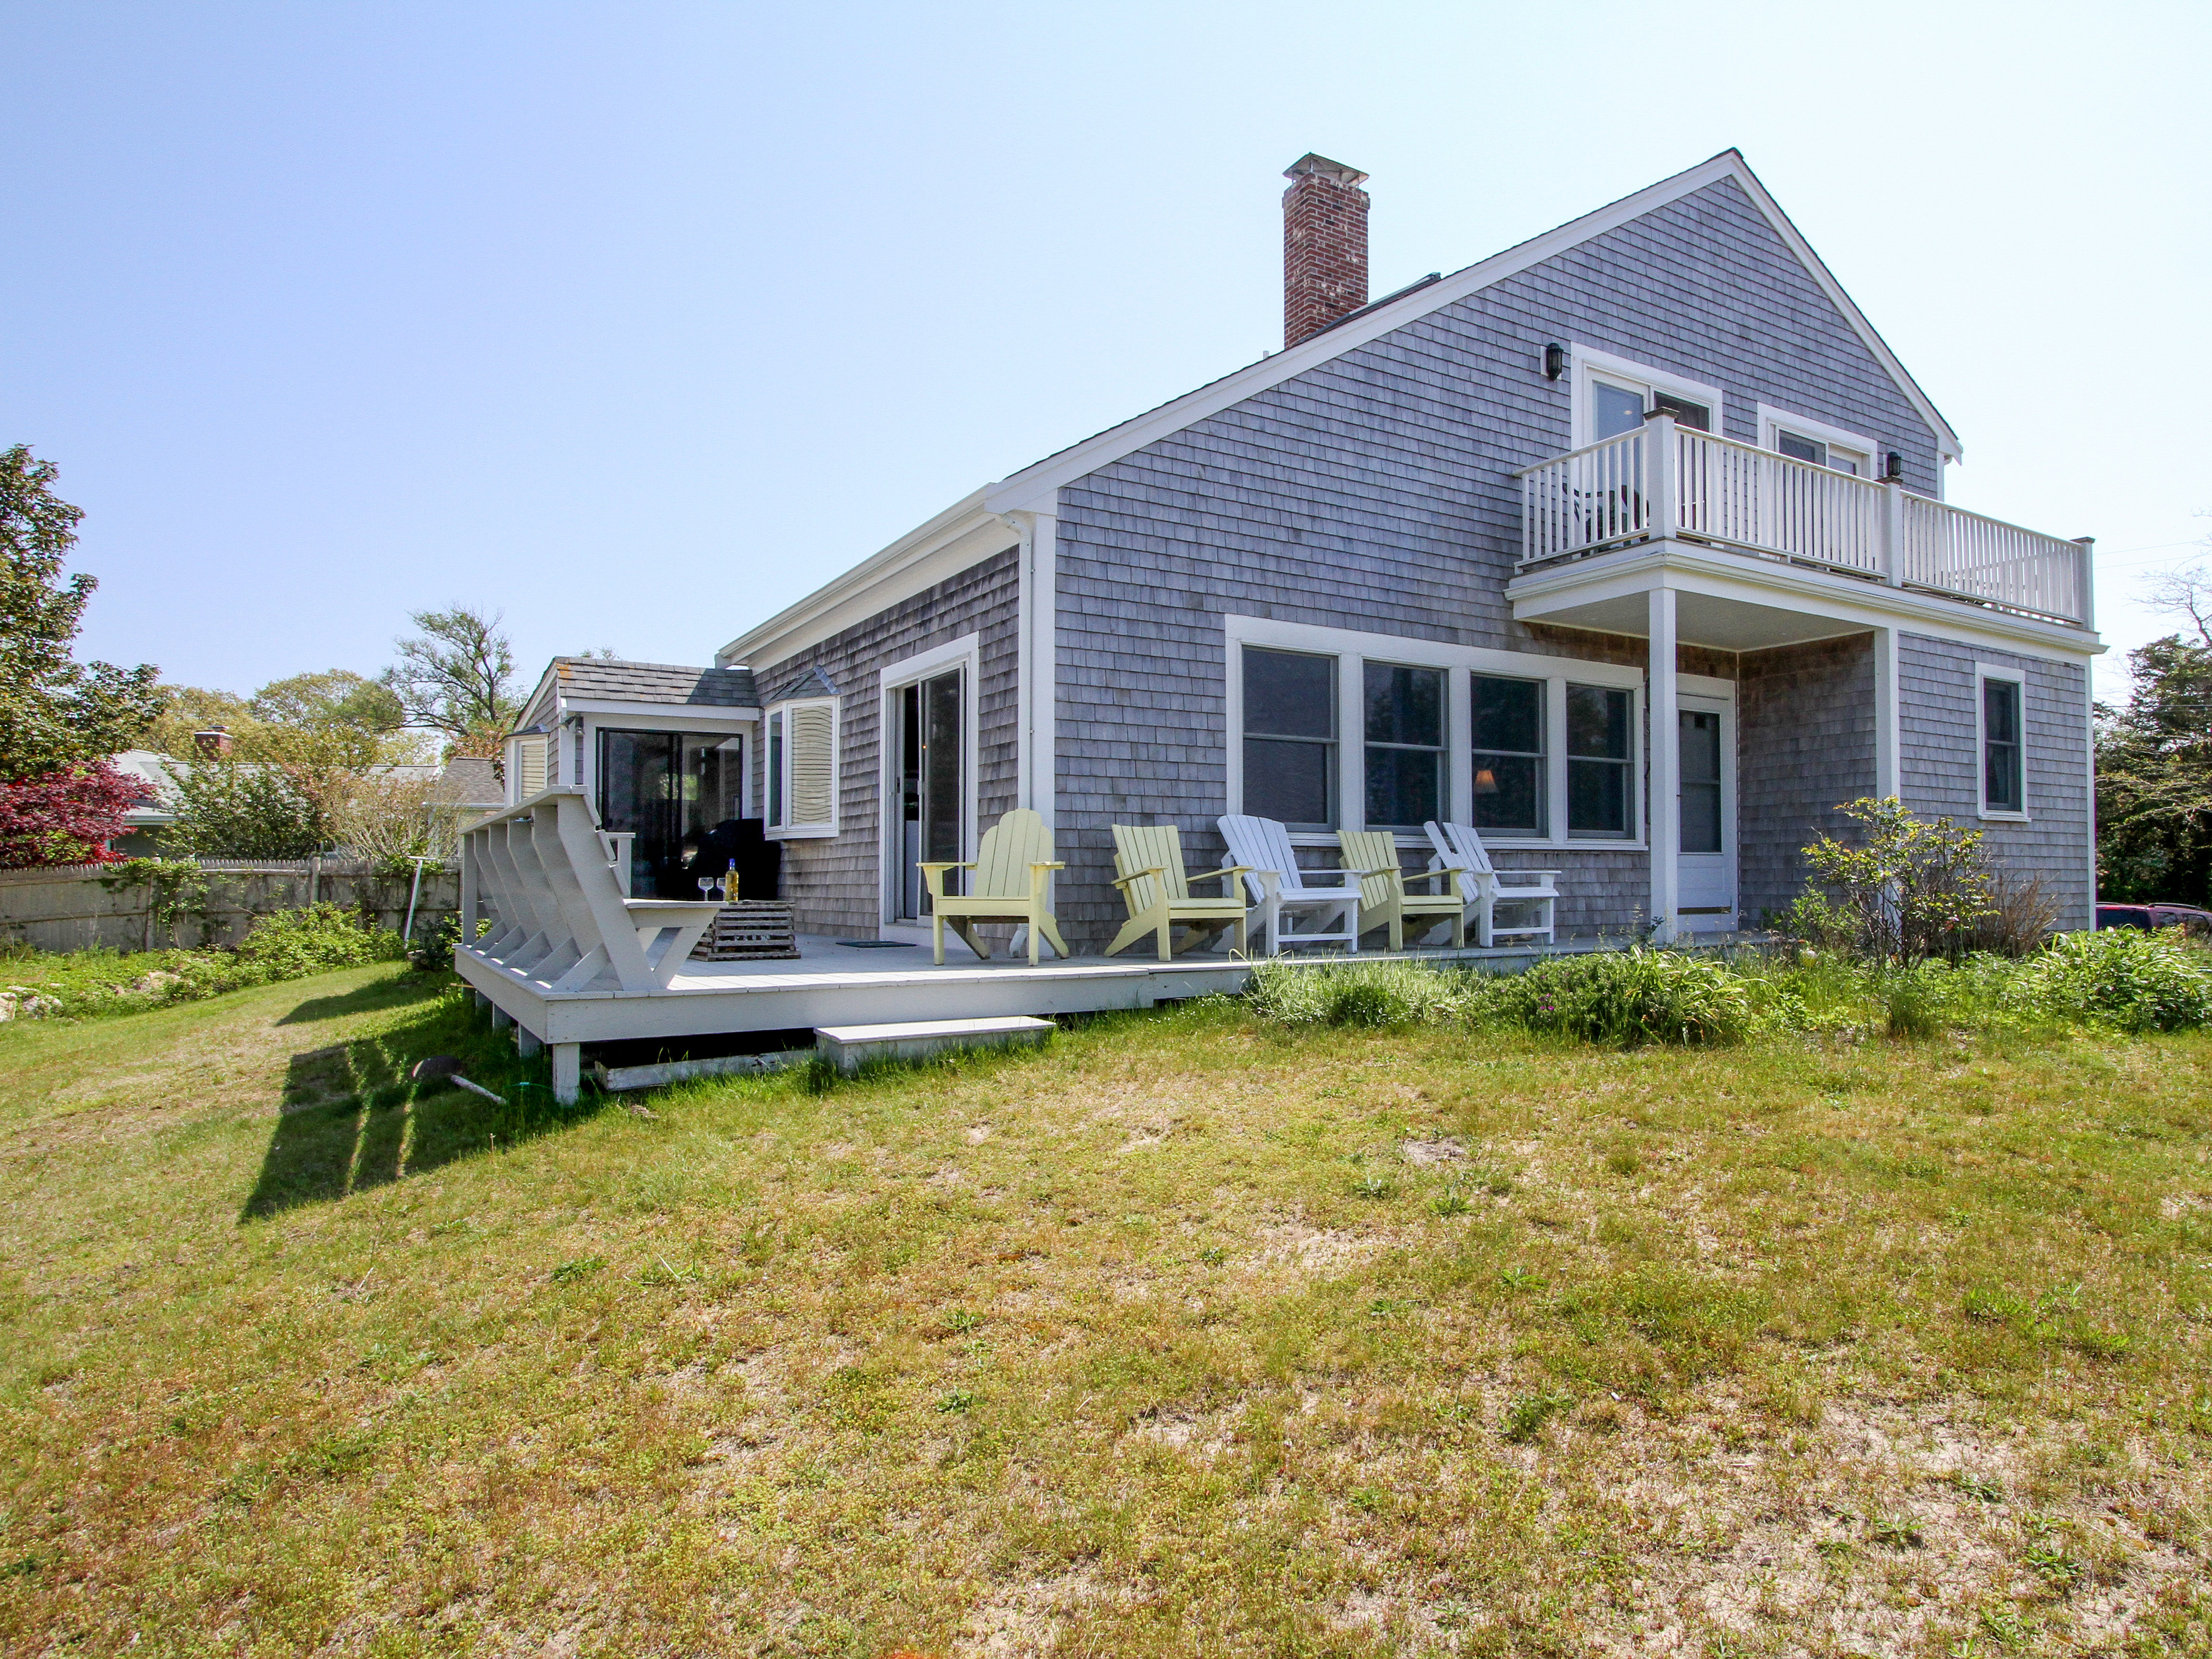 Bourne MA Vacation Rental Welcome to Cape